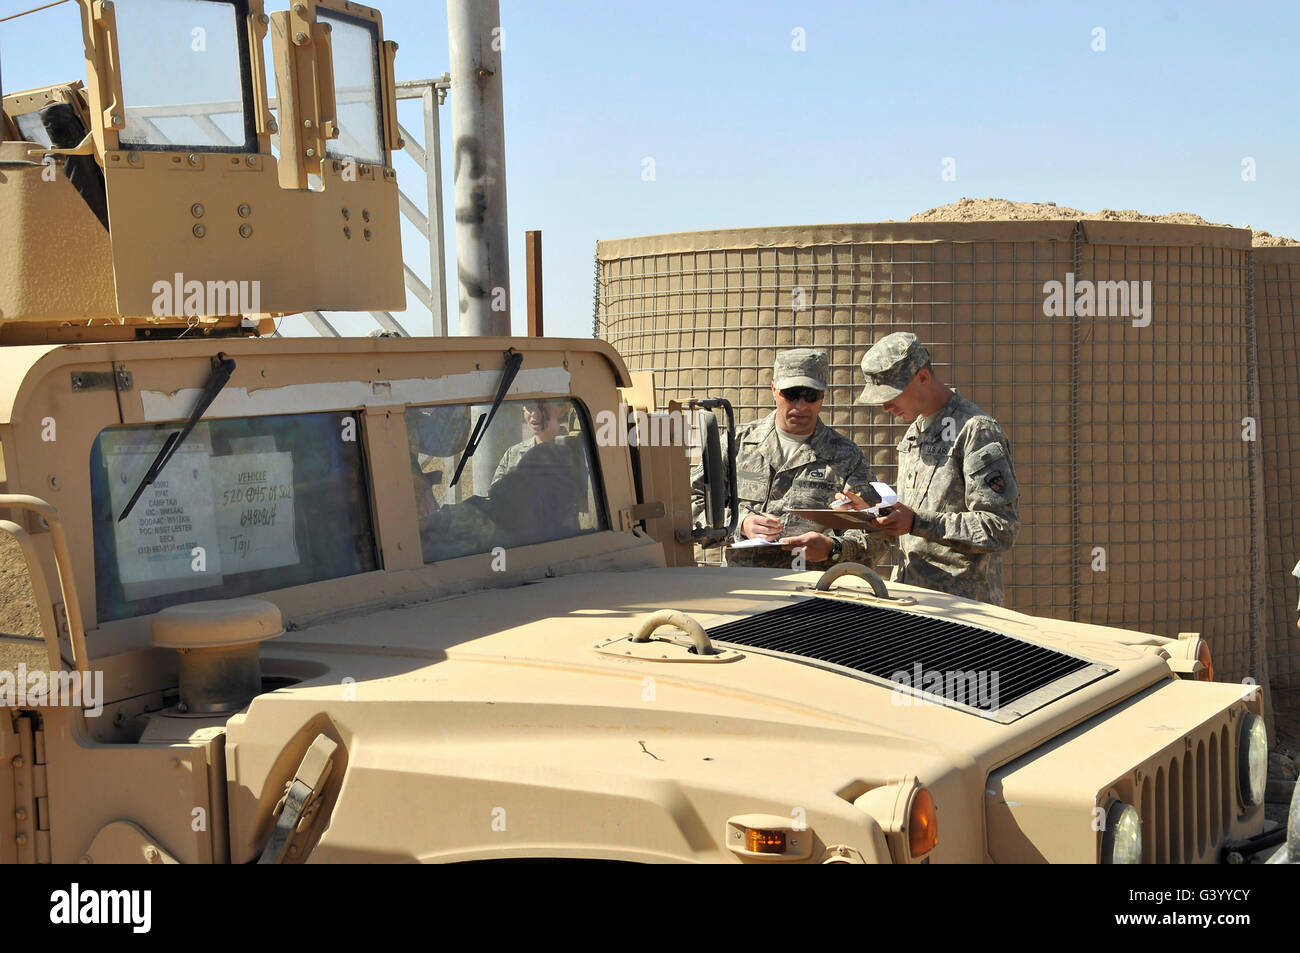 U.S. Army soldiers take accountability of an M1114 HMMWV. - Stock Image